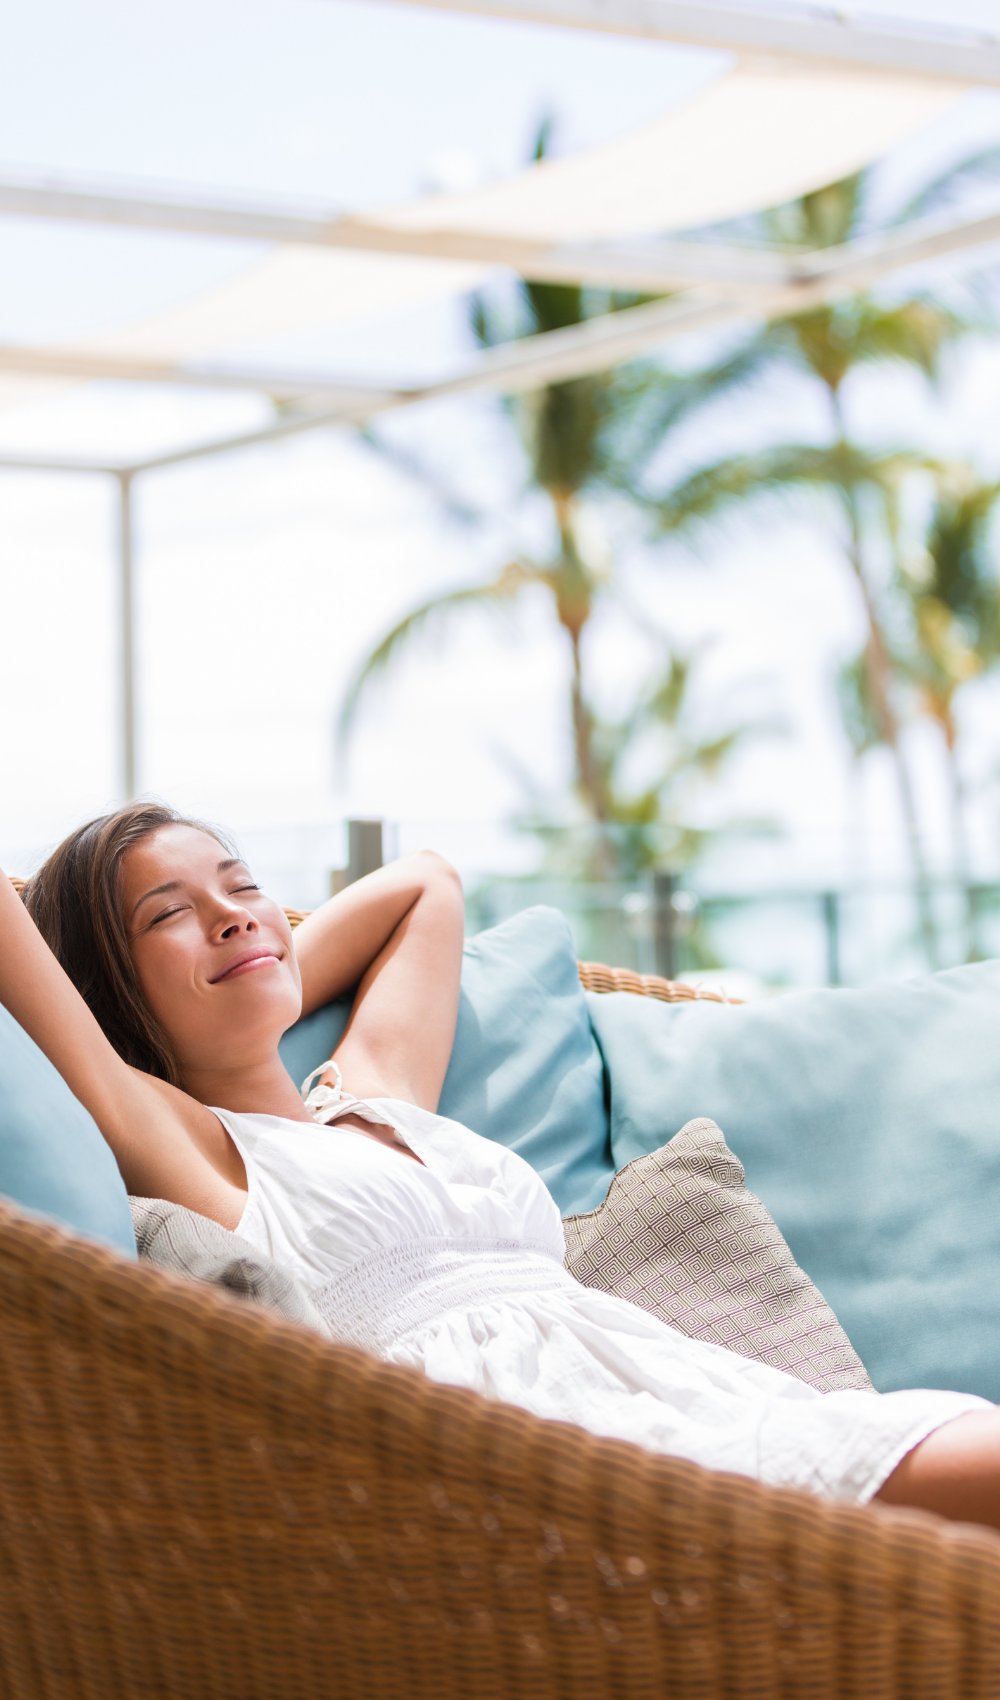 smiling woman napping in a comfortable couch on a porch in a tropical location